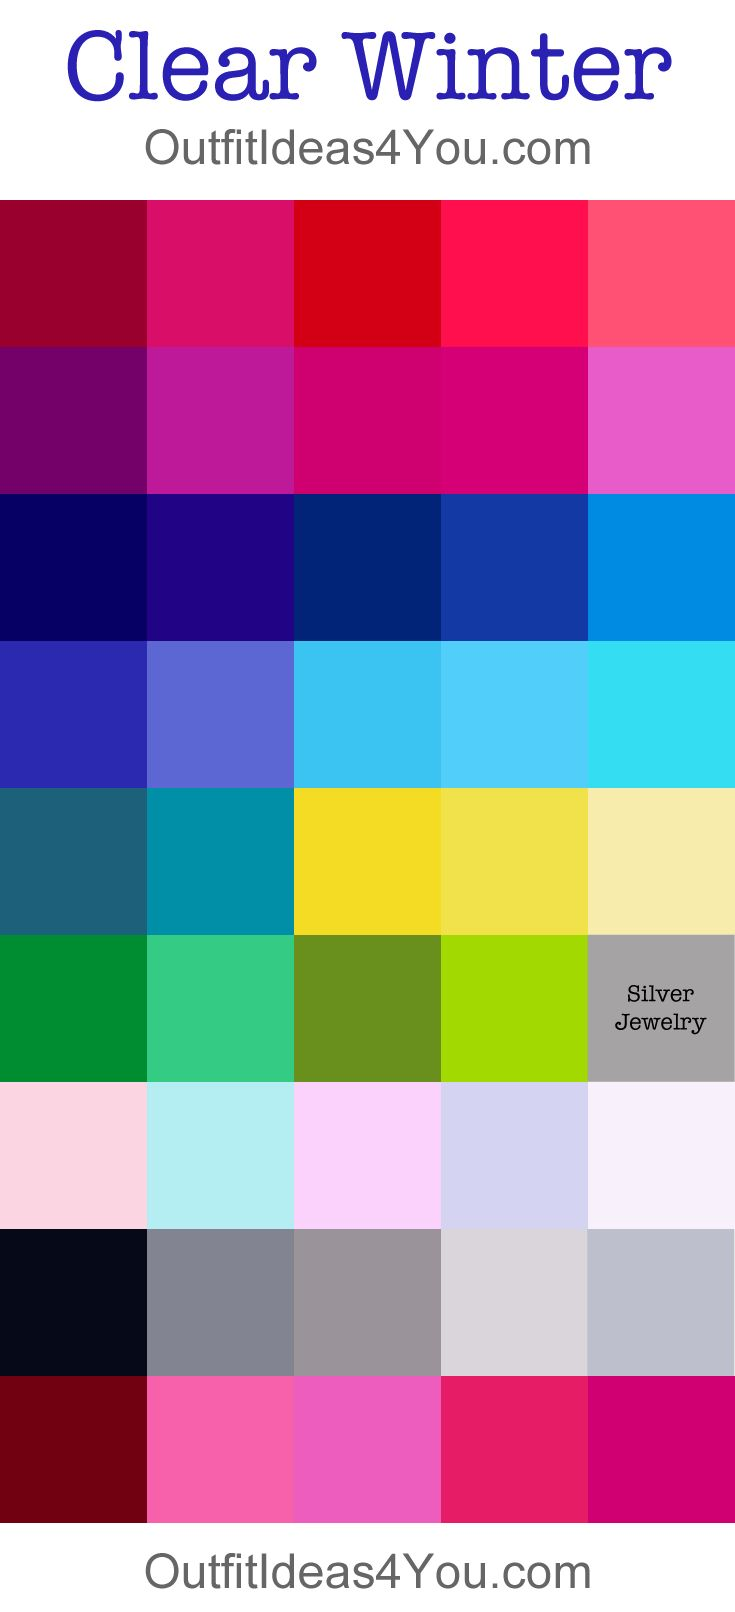 Clear/Bright Winter Color Palette. In Smart Colour Analysis System  are 2 groups - Clear Winter with cool tints and Bright Winter with very saturated, more intensive tints and pure hues. Bright Winter is more saturated and bright.